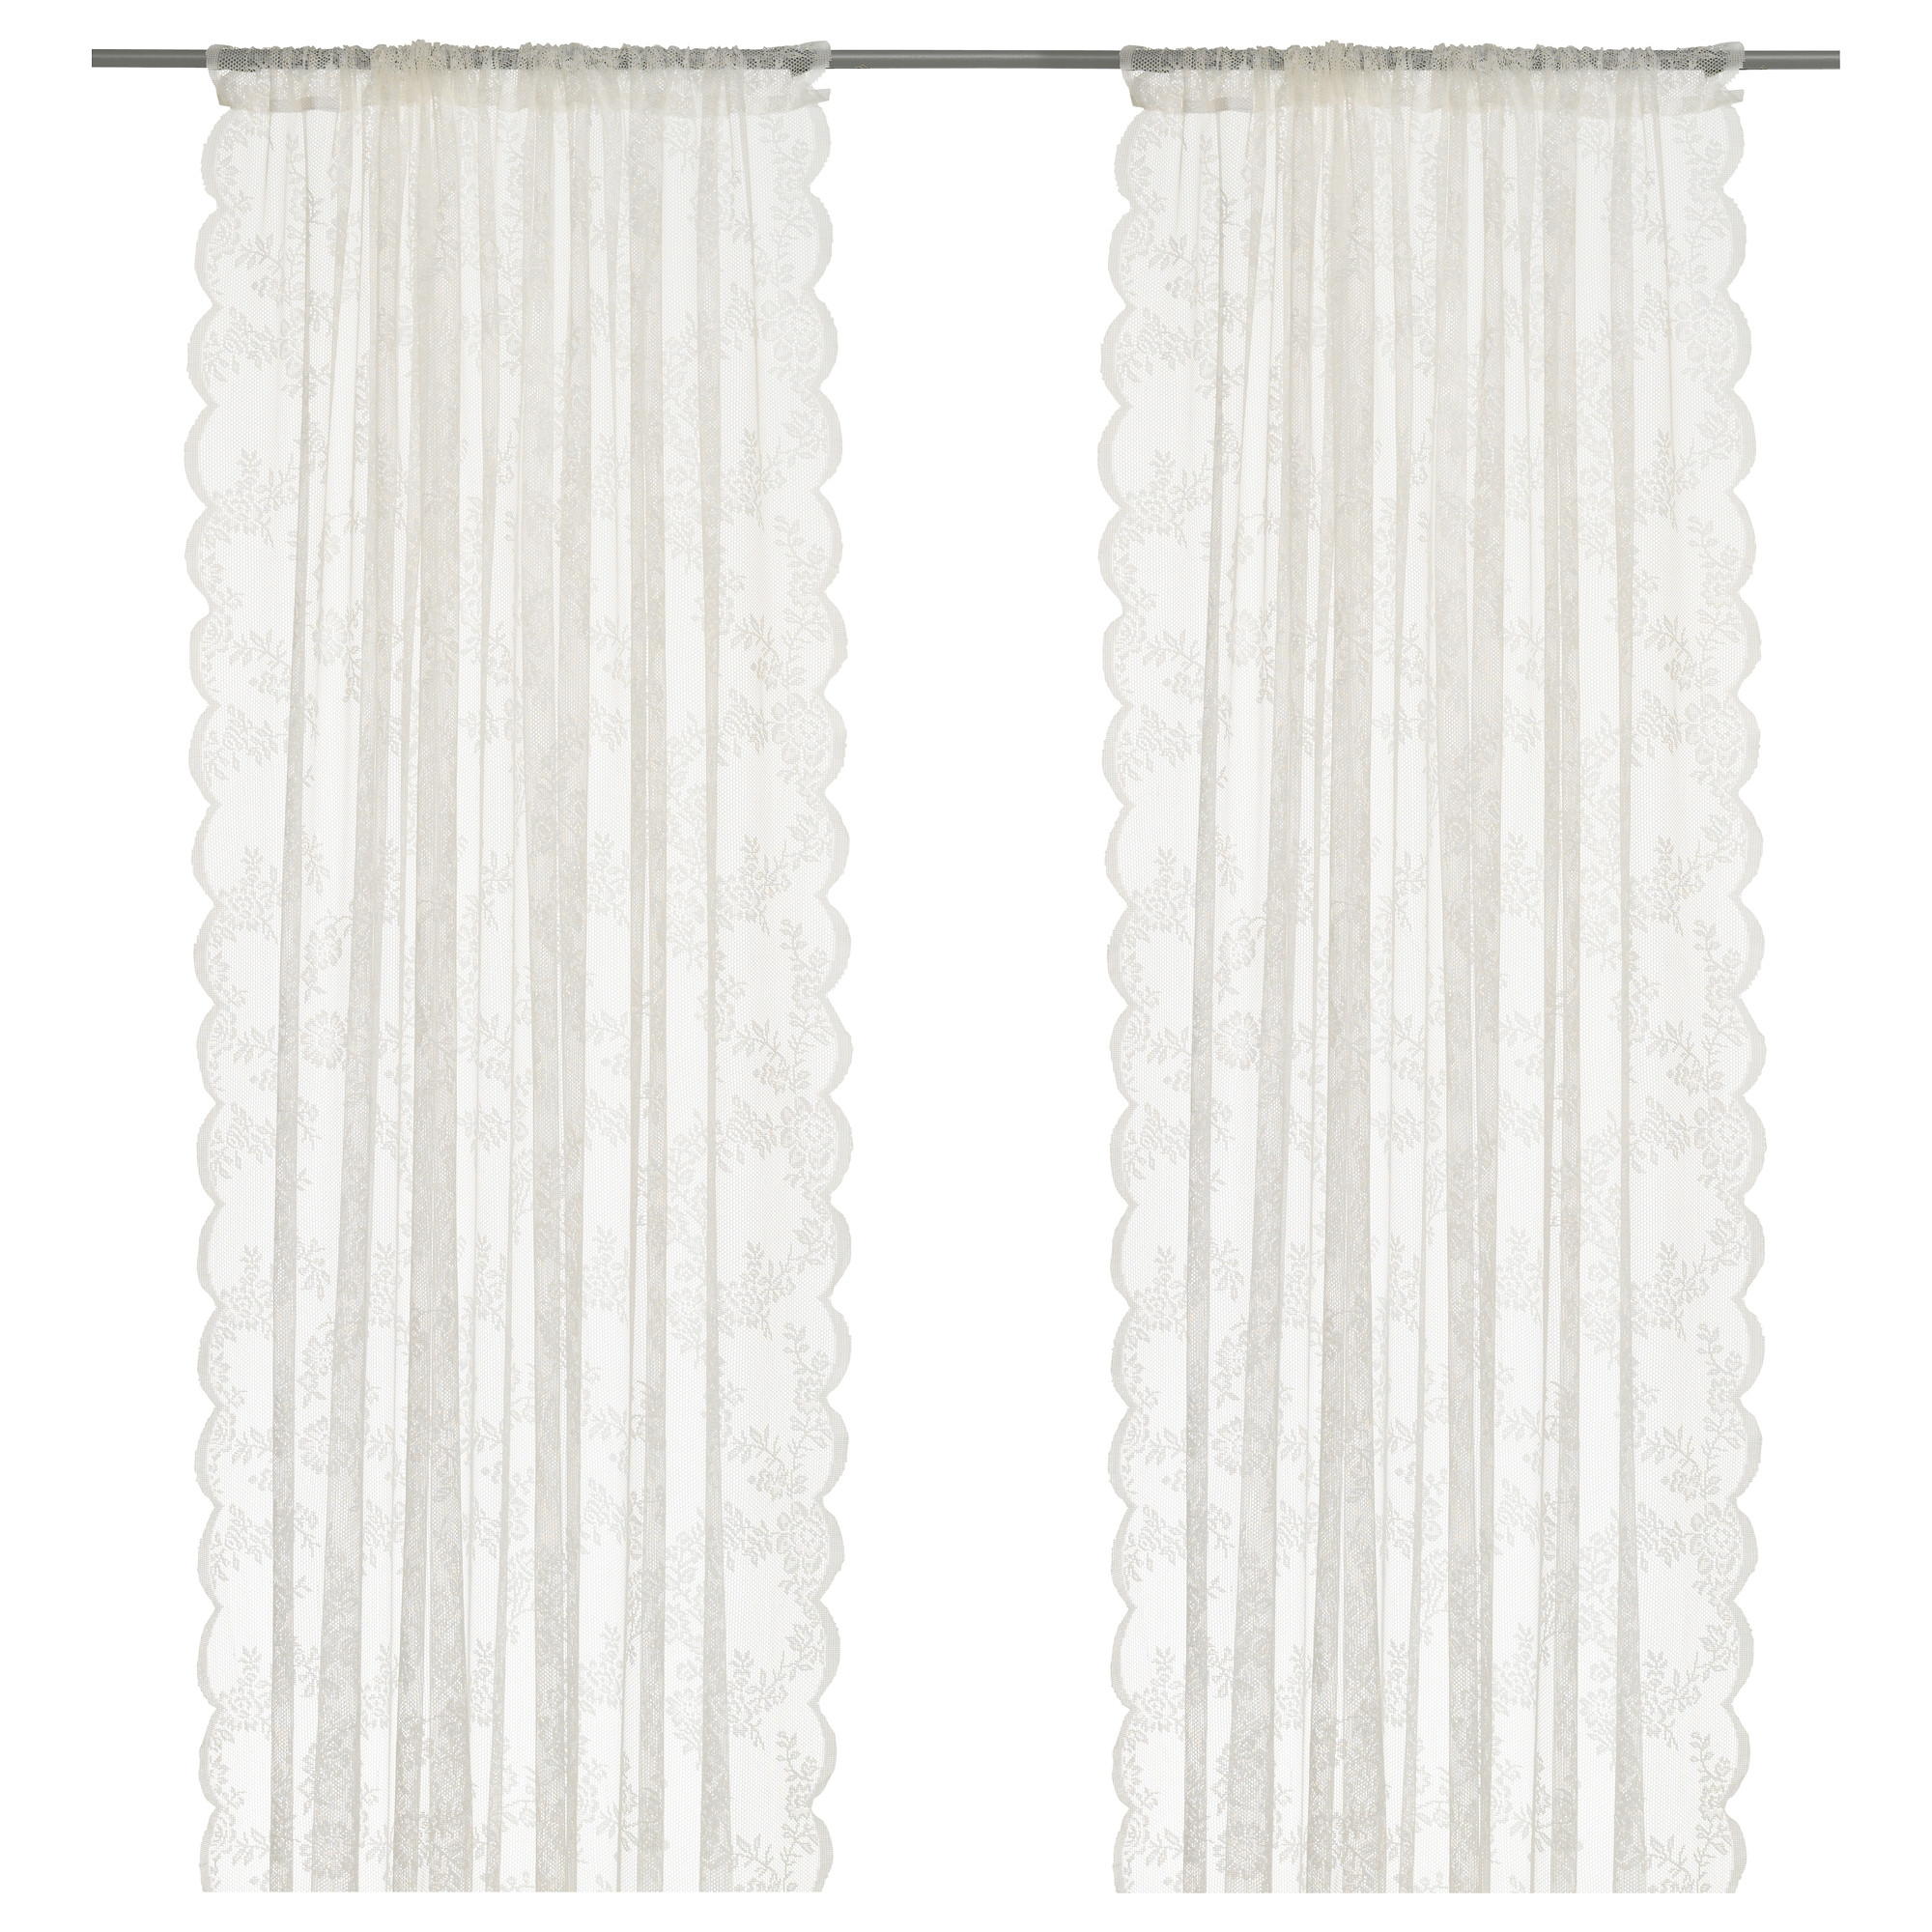 Interior 108 Inch Blackout Curtains And 63 Inch Curtains With In 63 Inches Long Curtains (Image 15 of 25)